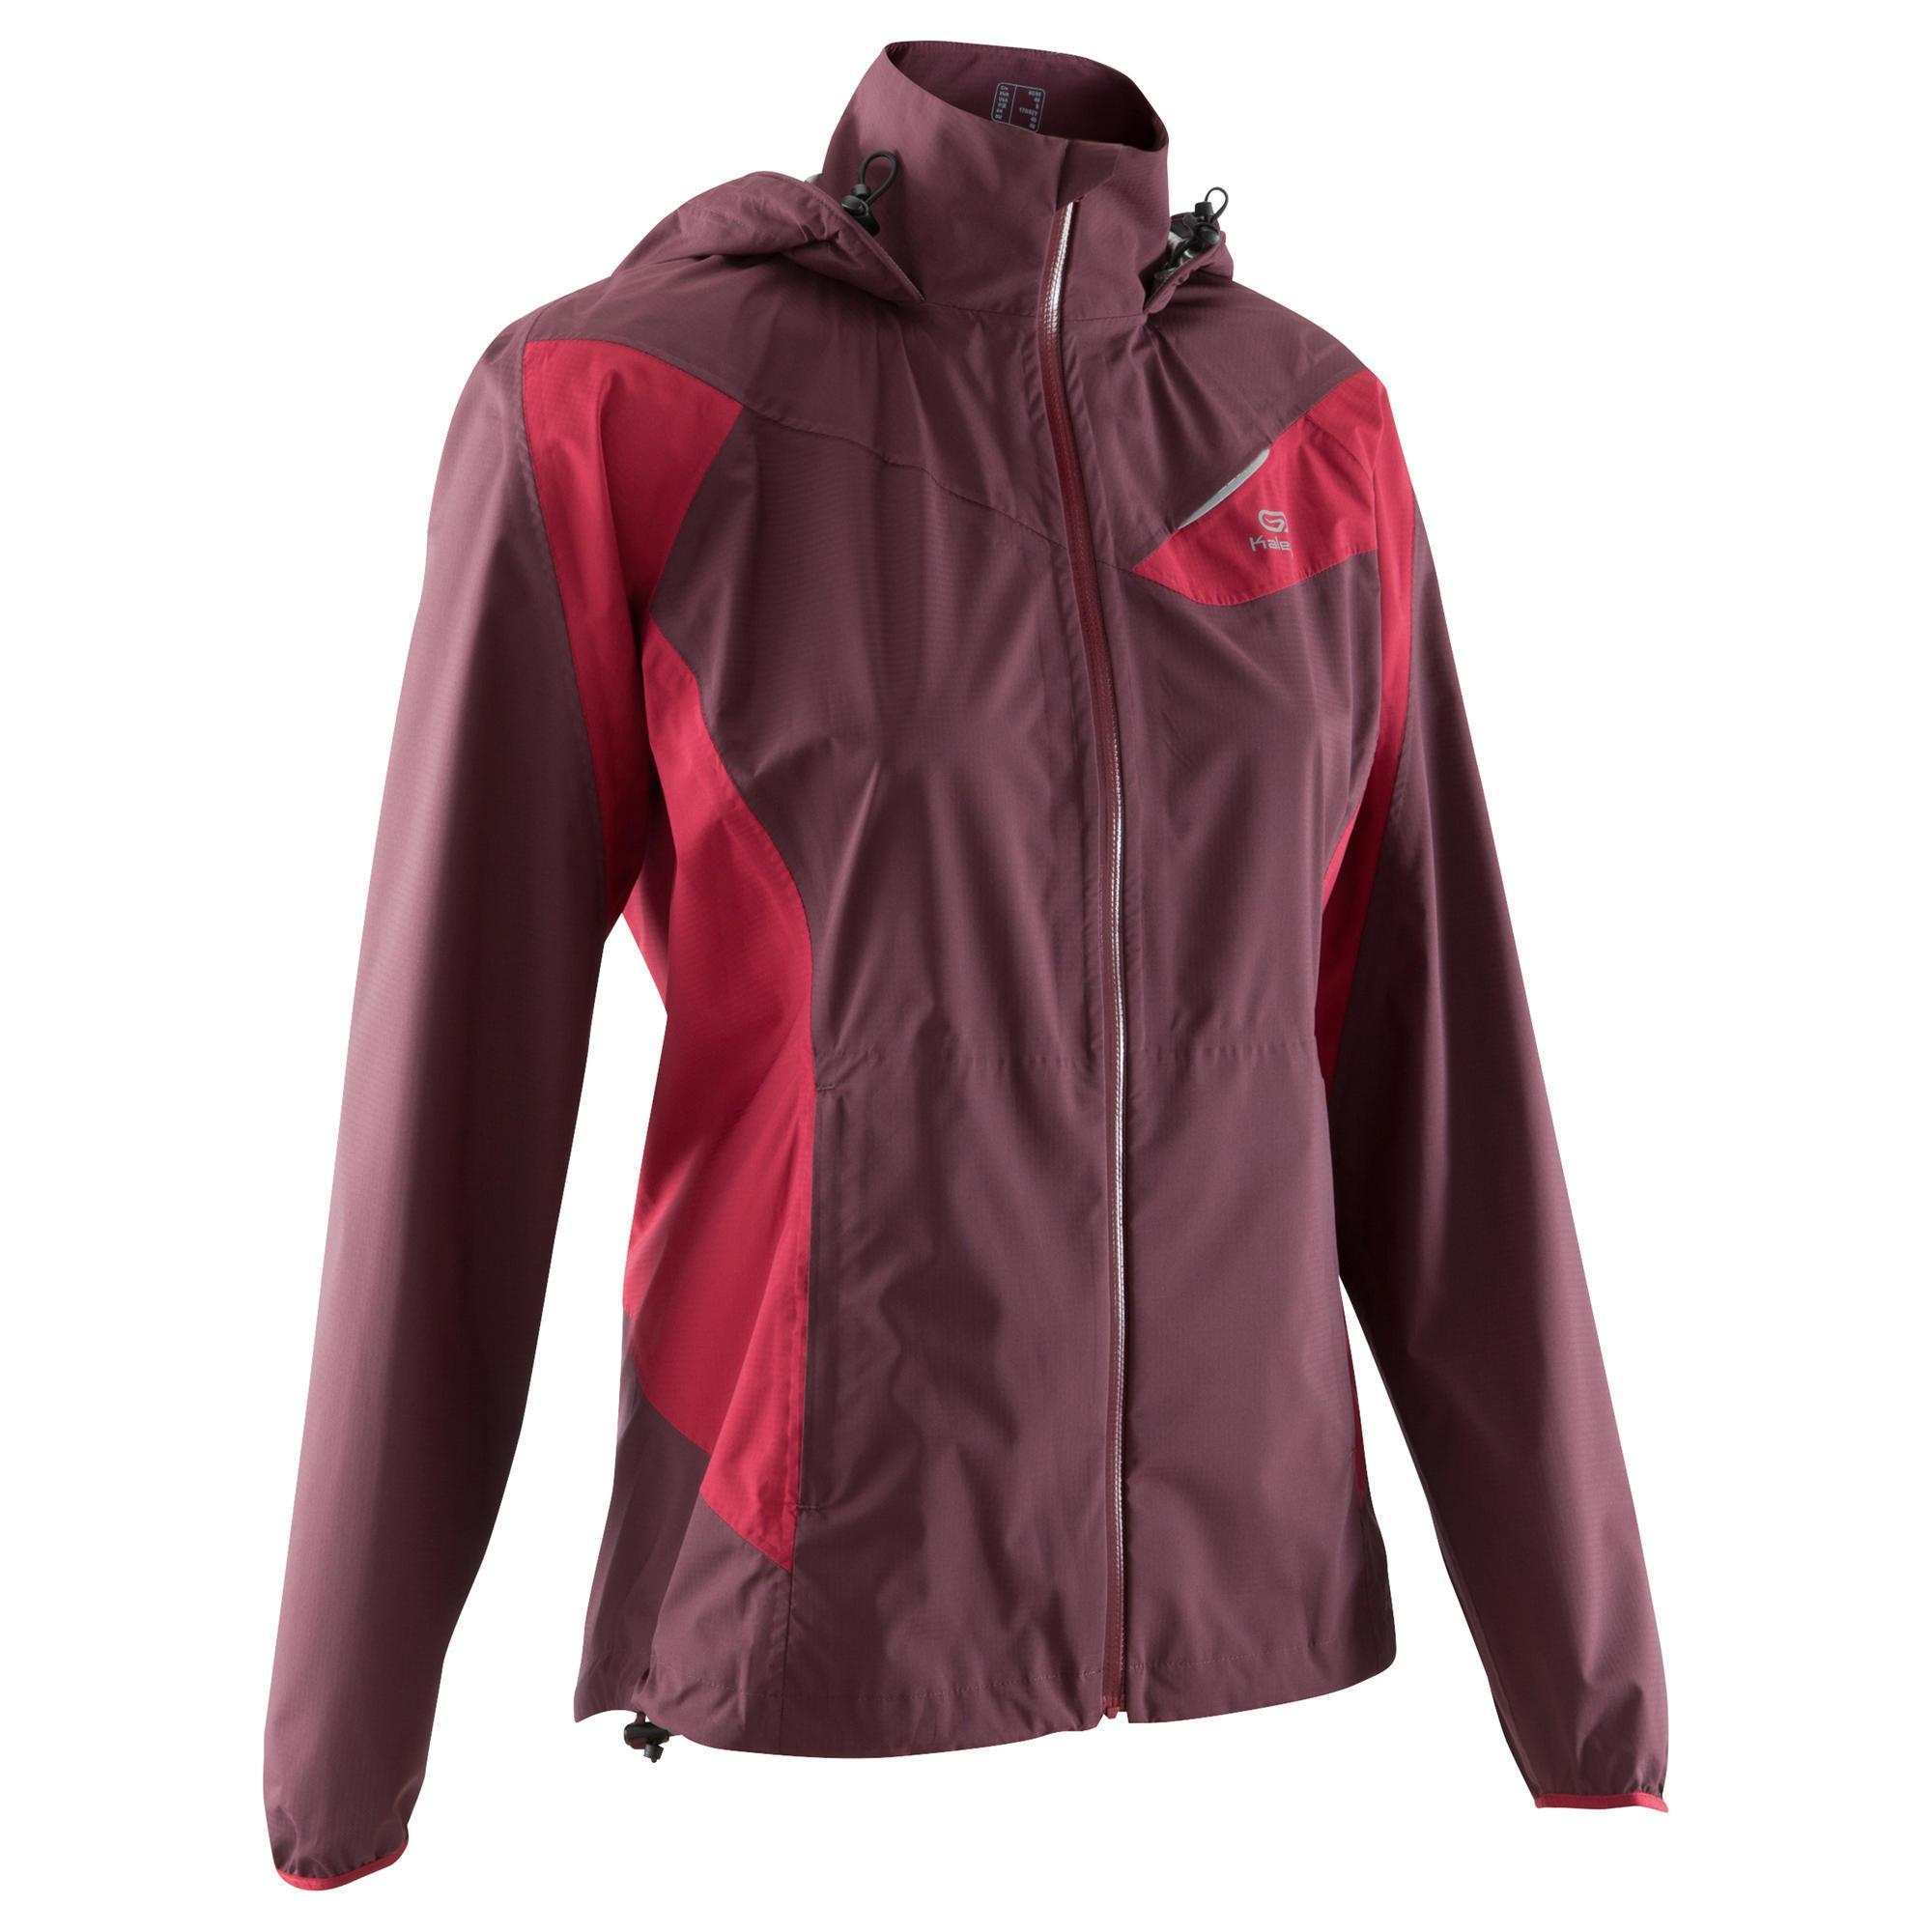 veste imperm able trail running femme bordeaux kalenji